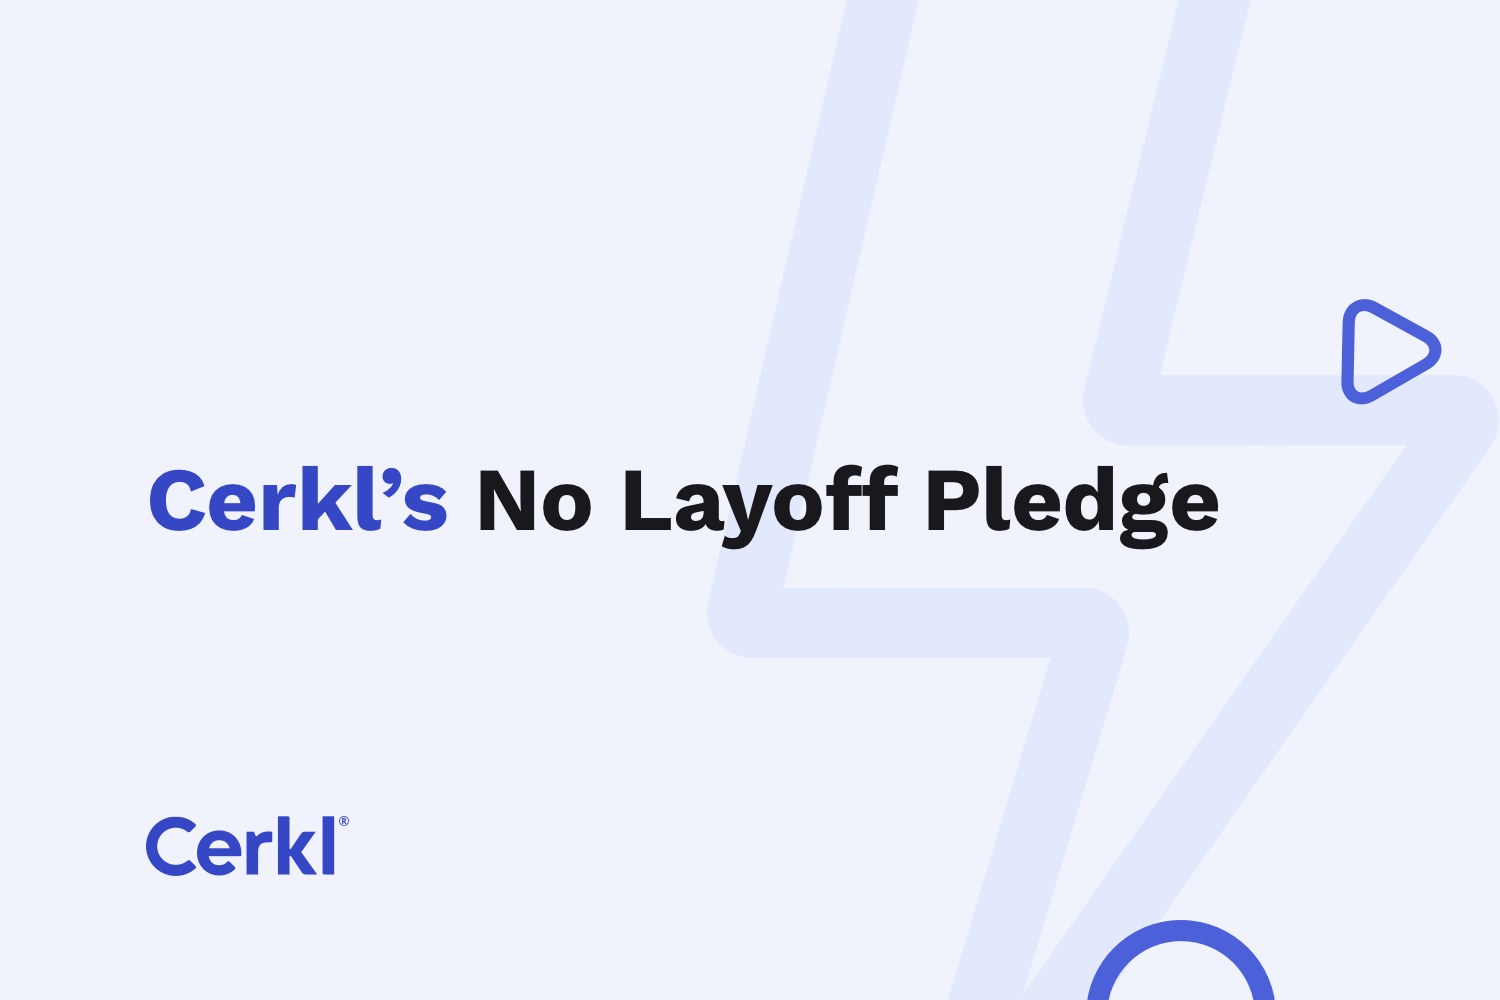 Cerkl No Layoff Pledge Graphic Real